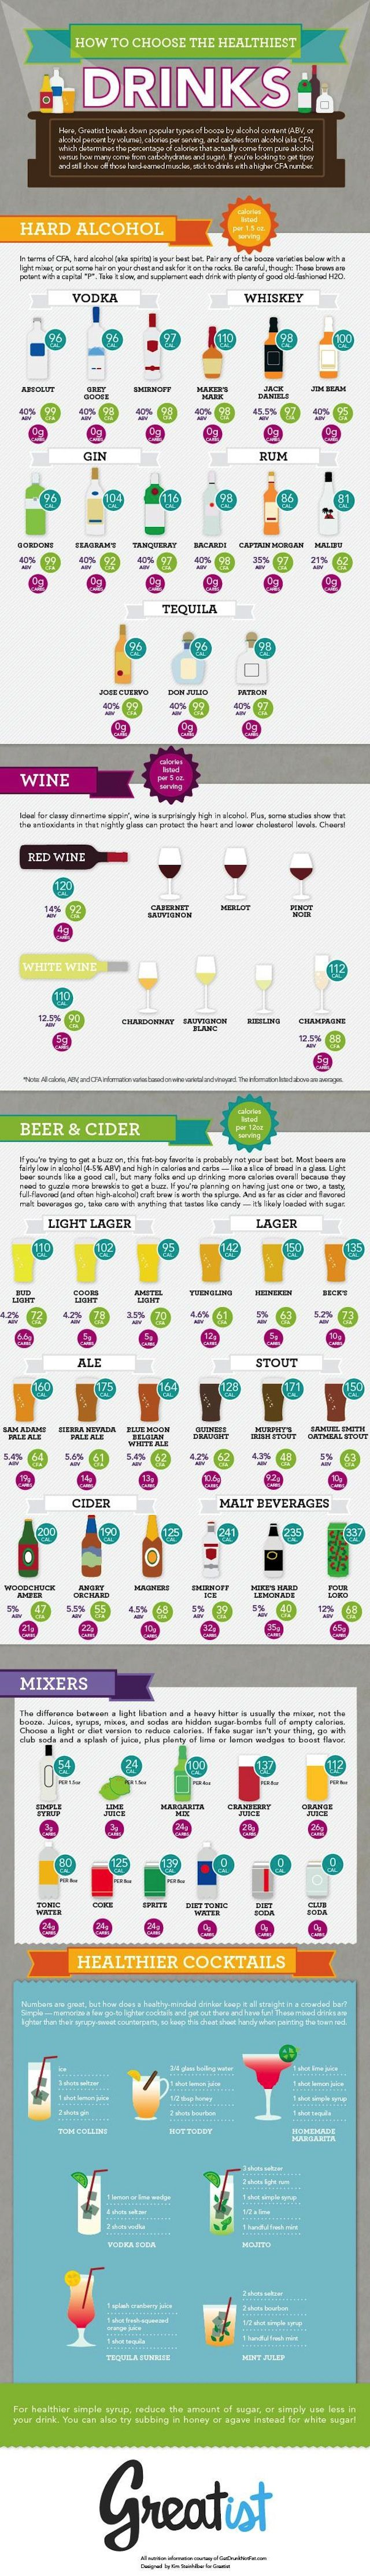 This Graphic Guides You to the Healthiest Beer, Wine, and Cocktails